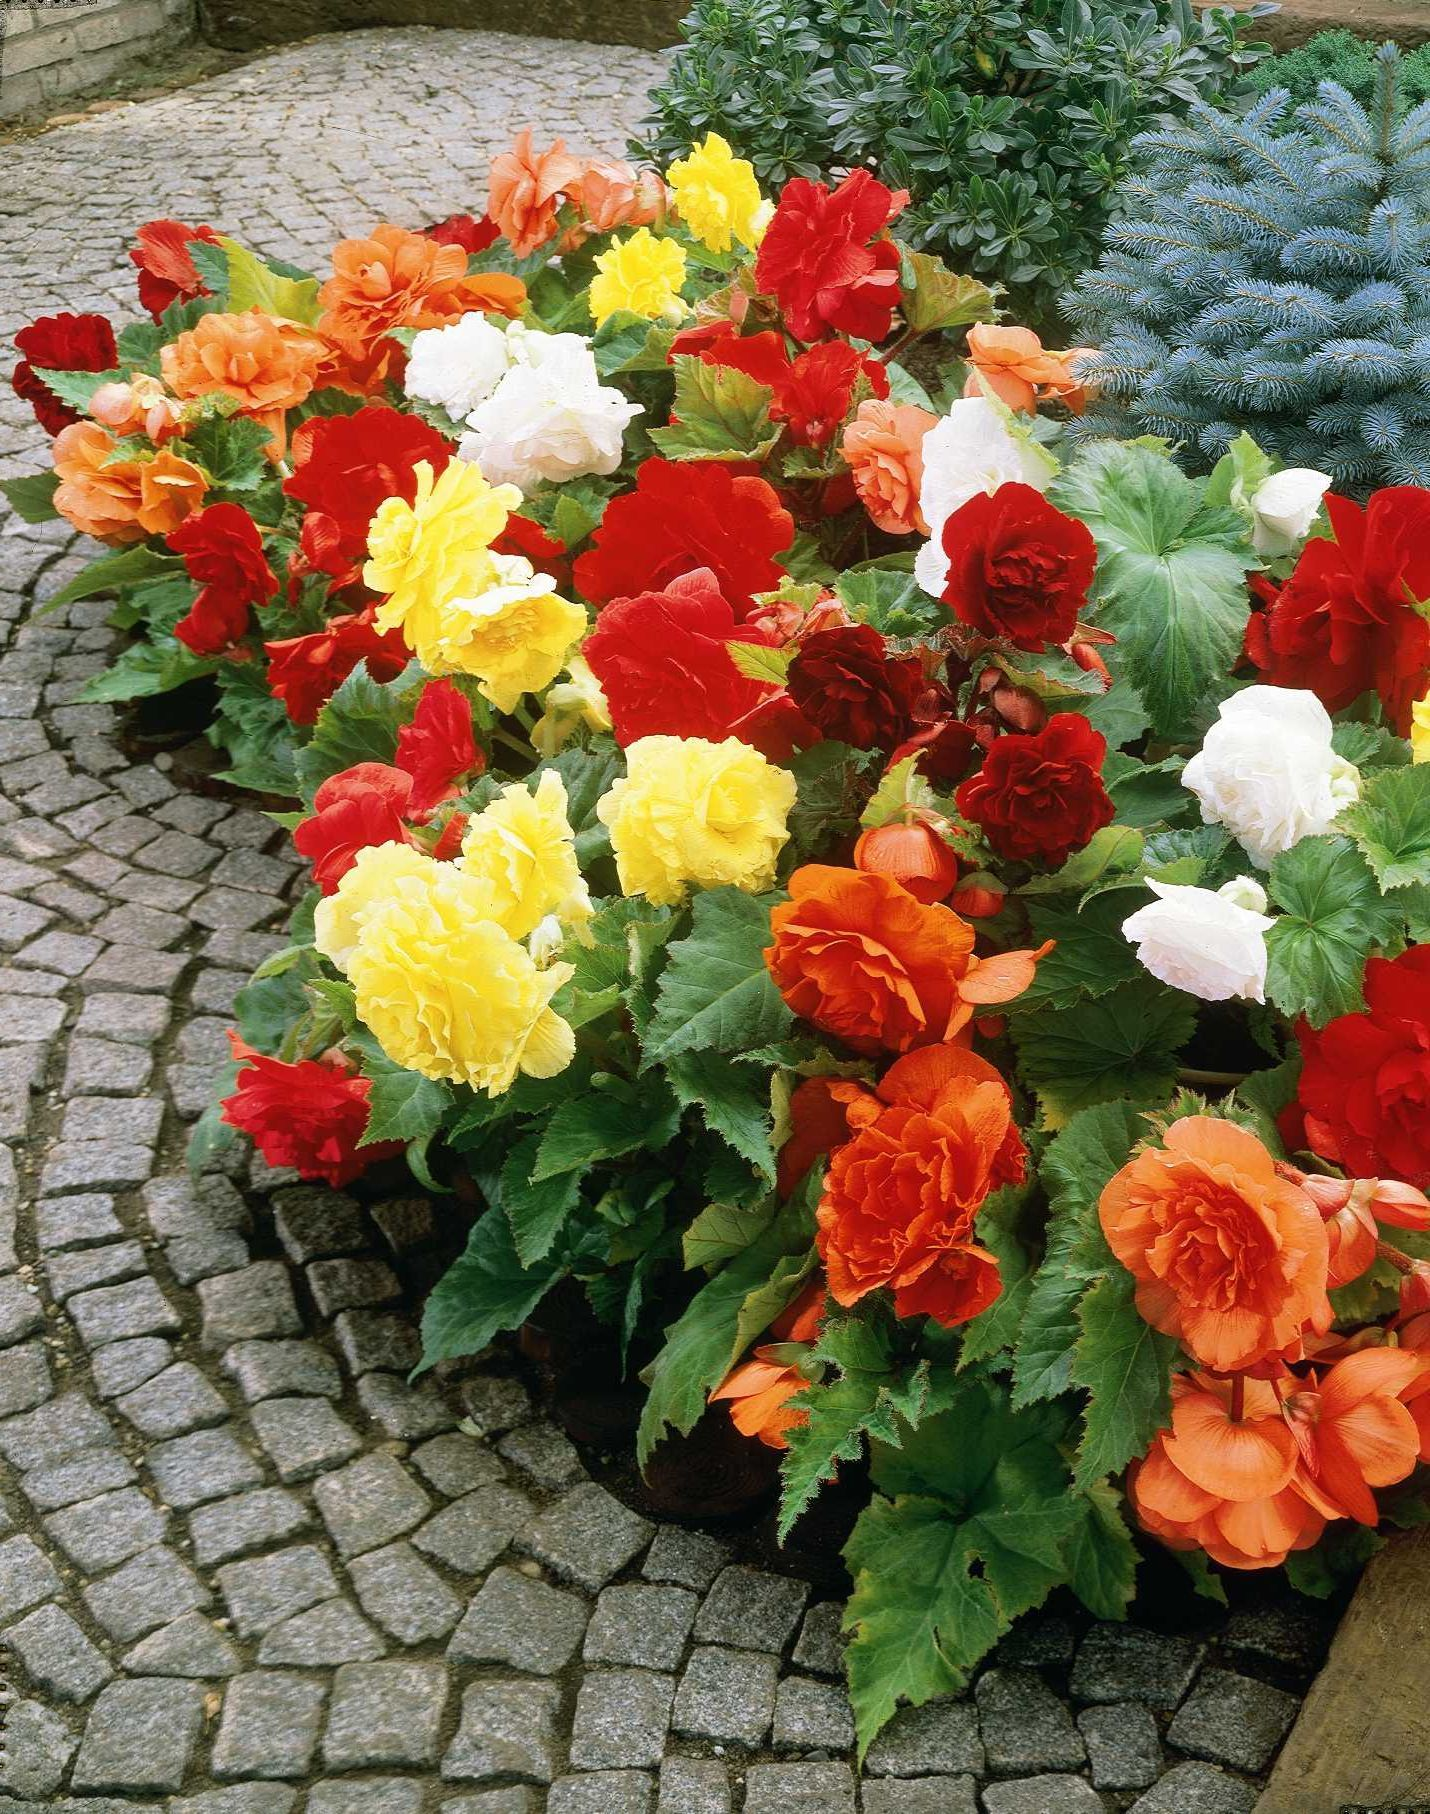 How To Care For A Begonia Plant Garden Bulbs Planting Flowers Tuberous Begonia